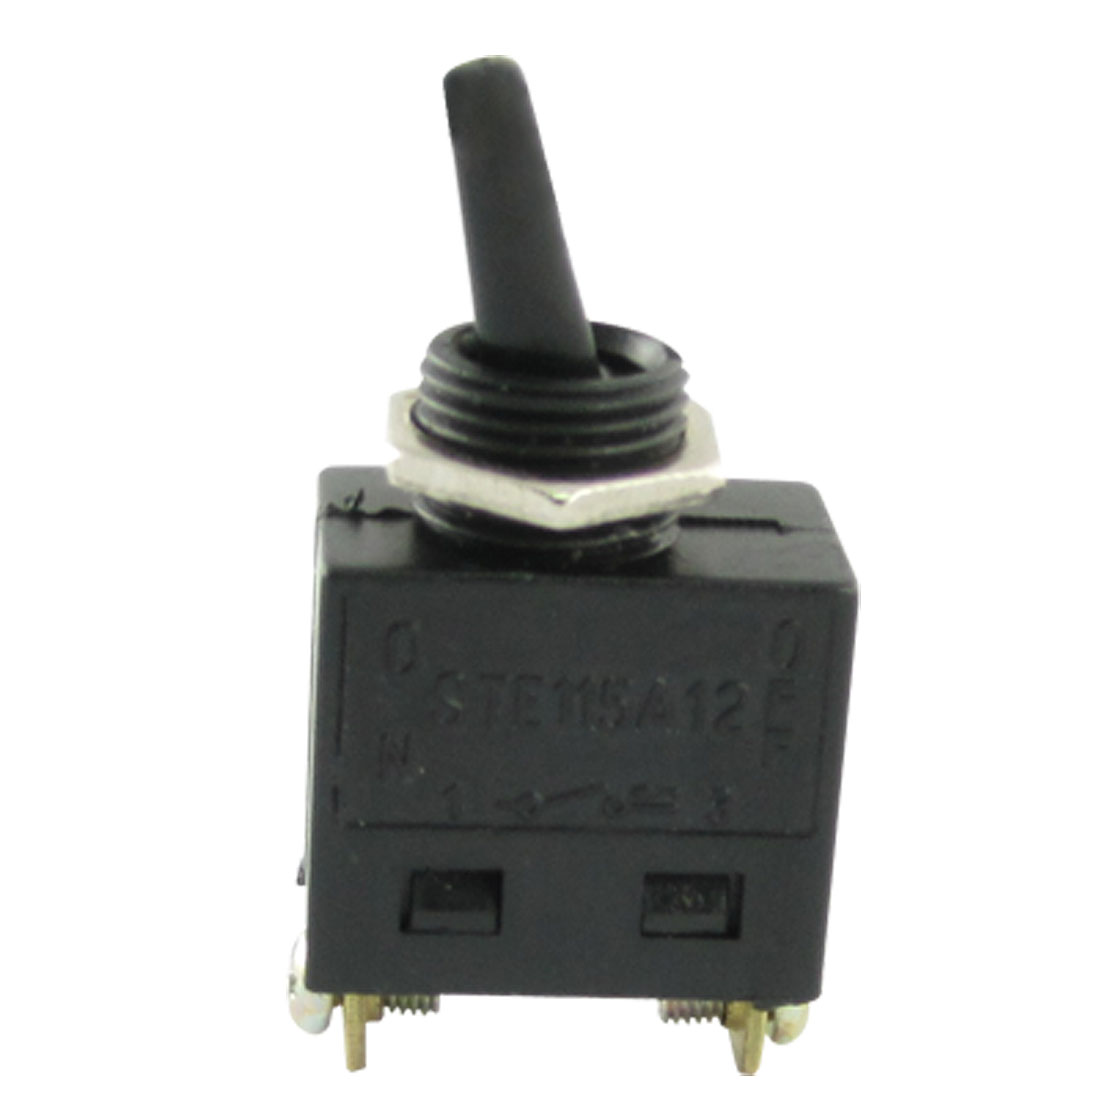 AC 125V 15A 250V 8A On/Off SPST Toggle Switch Black w Screw Terminals